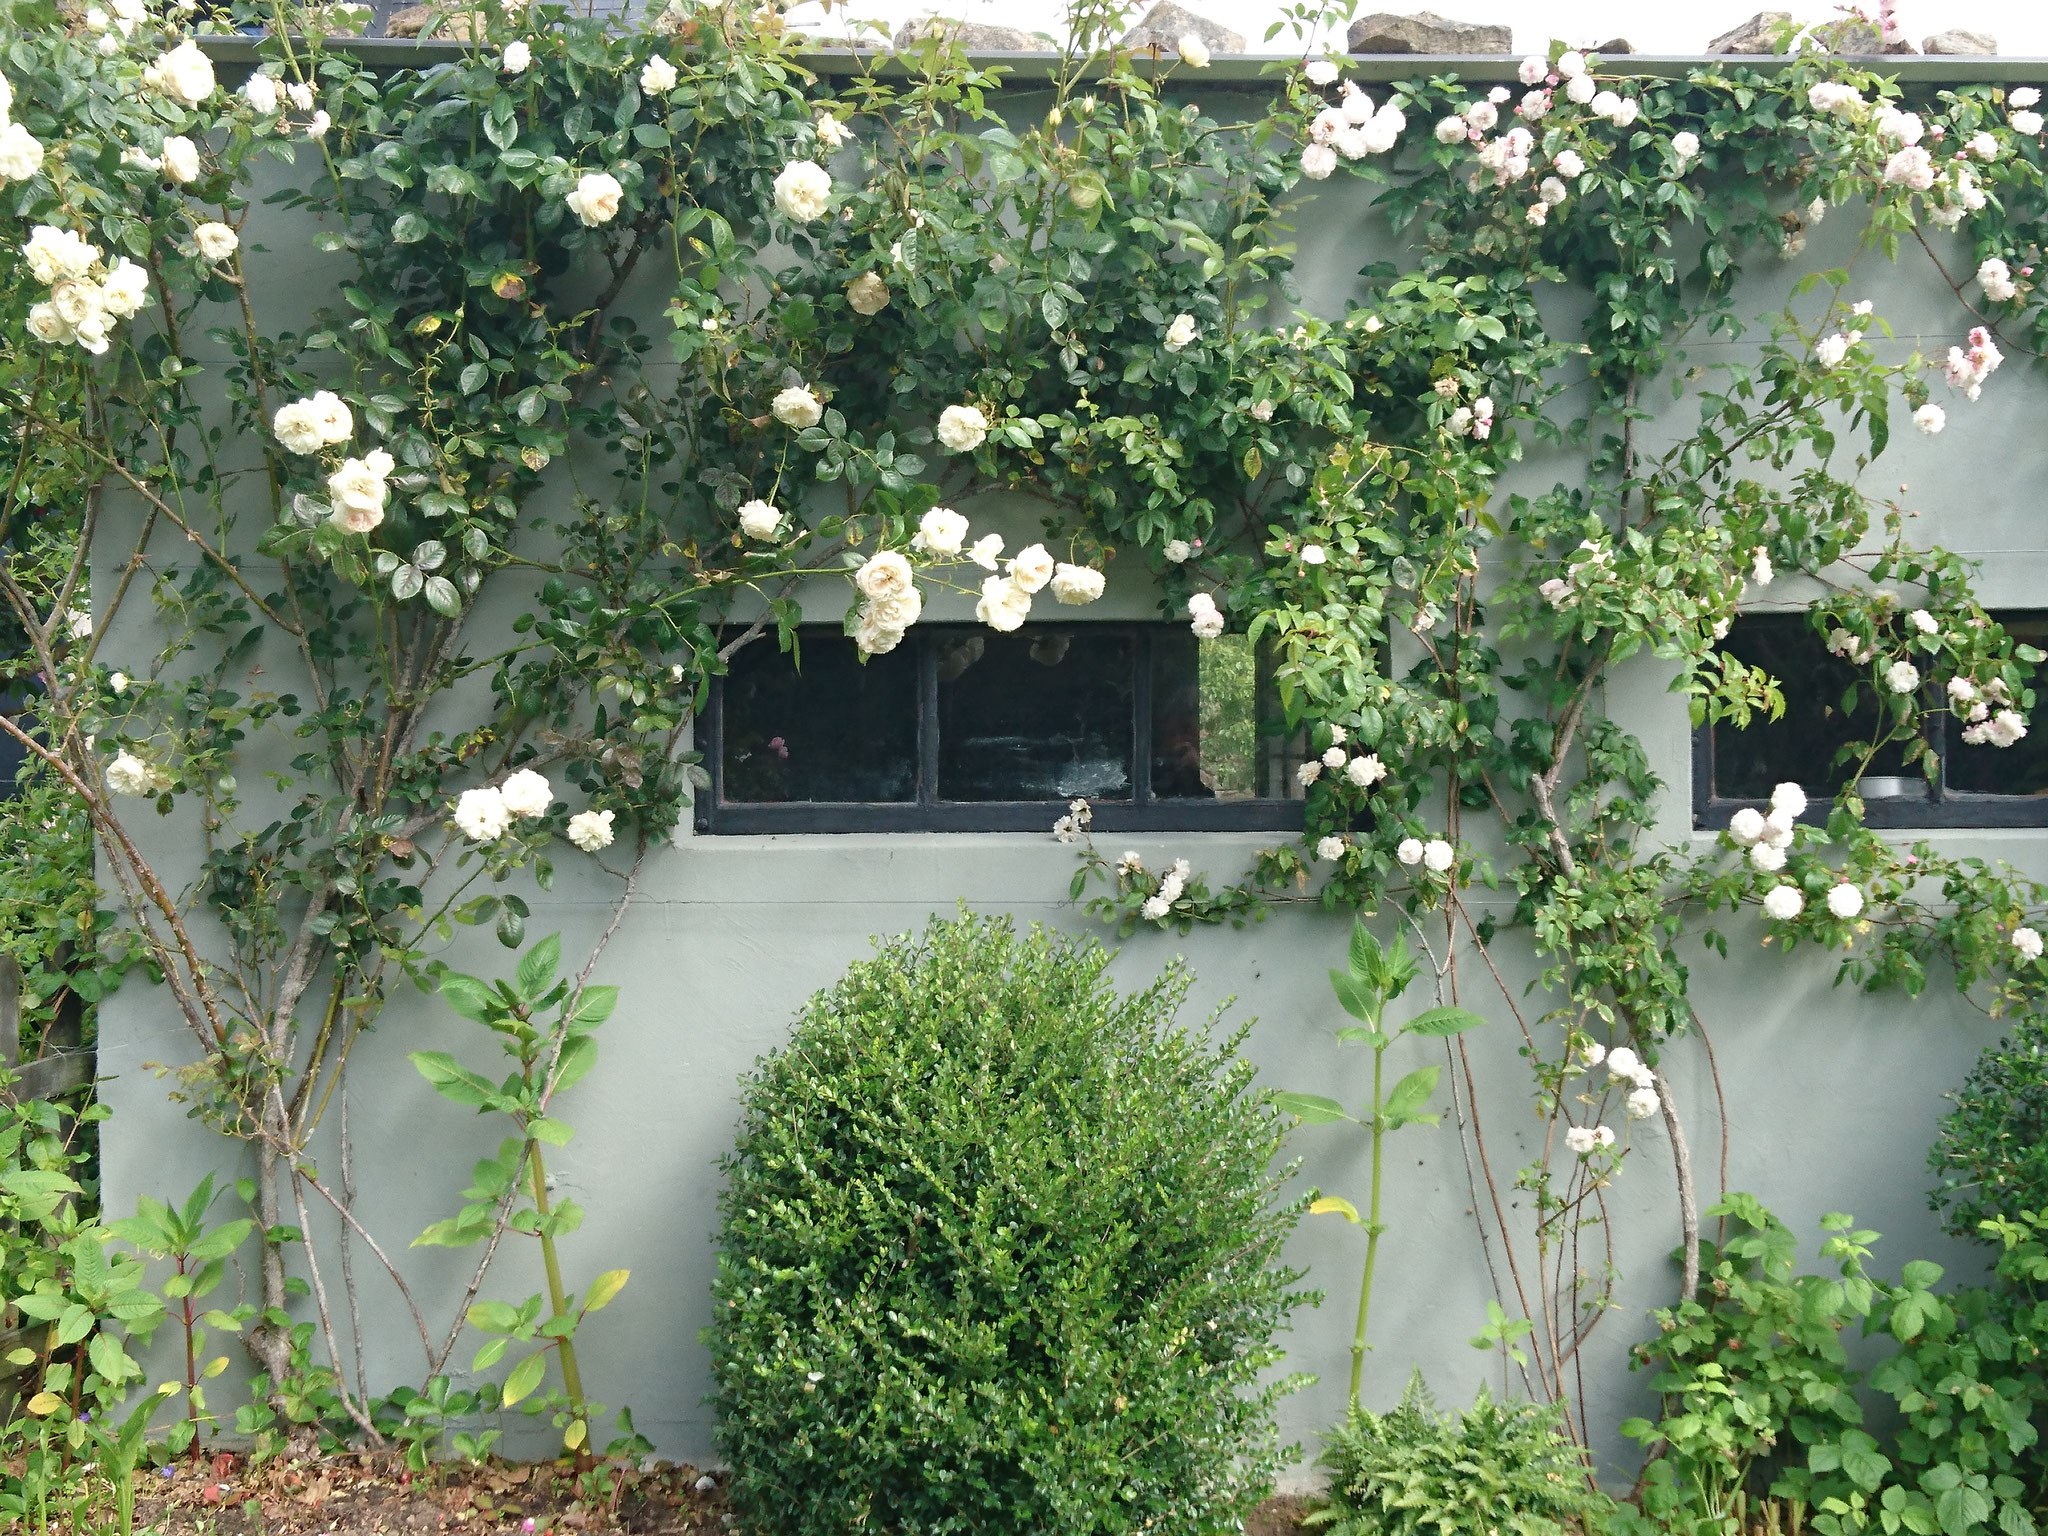 Roses blanches au jardin